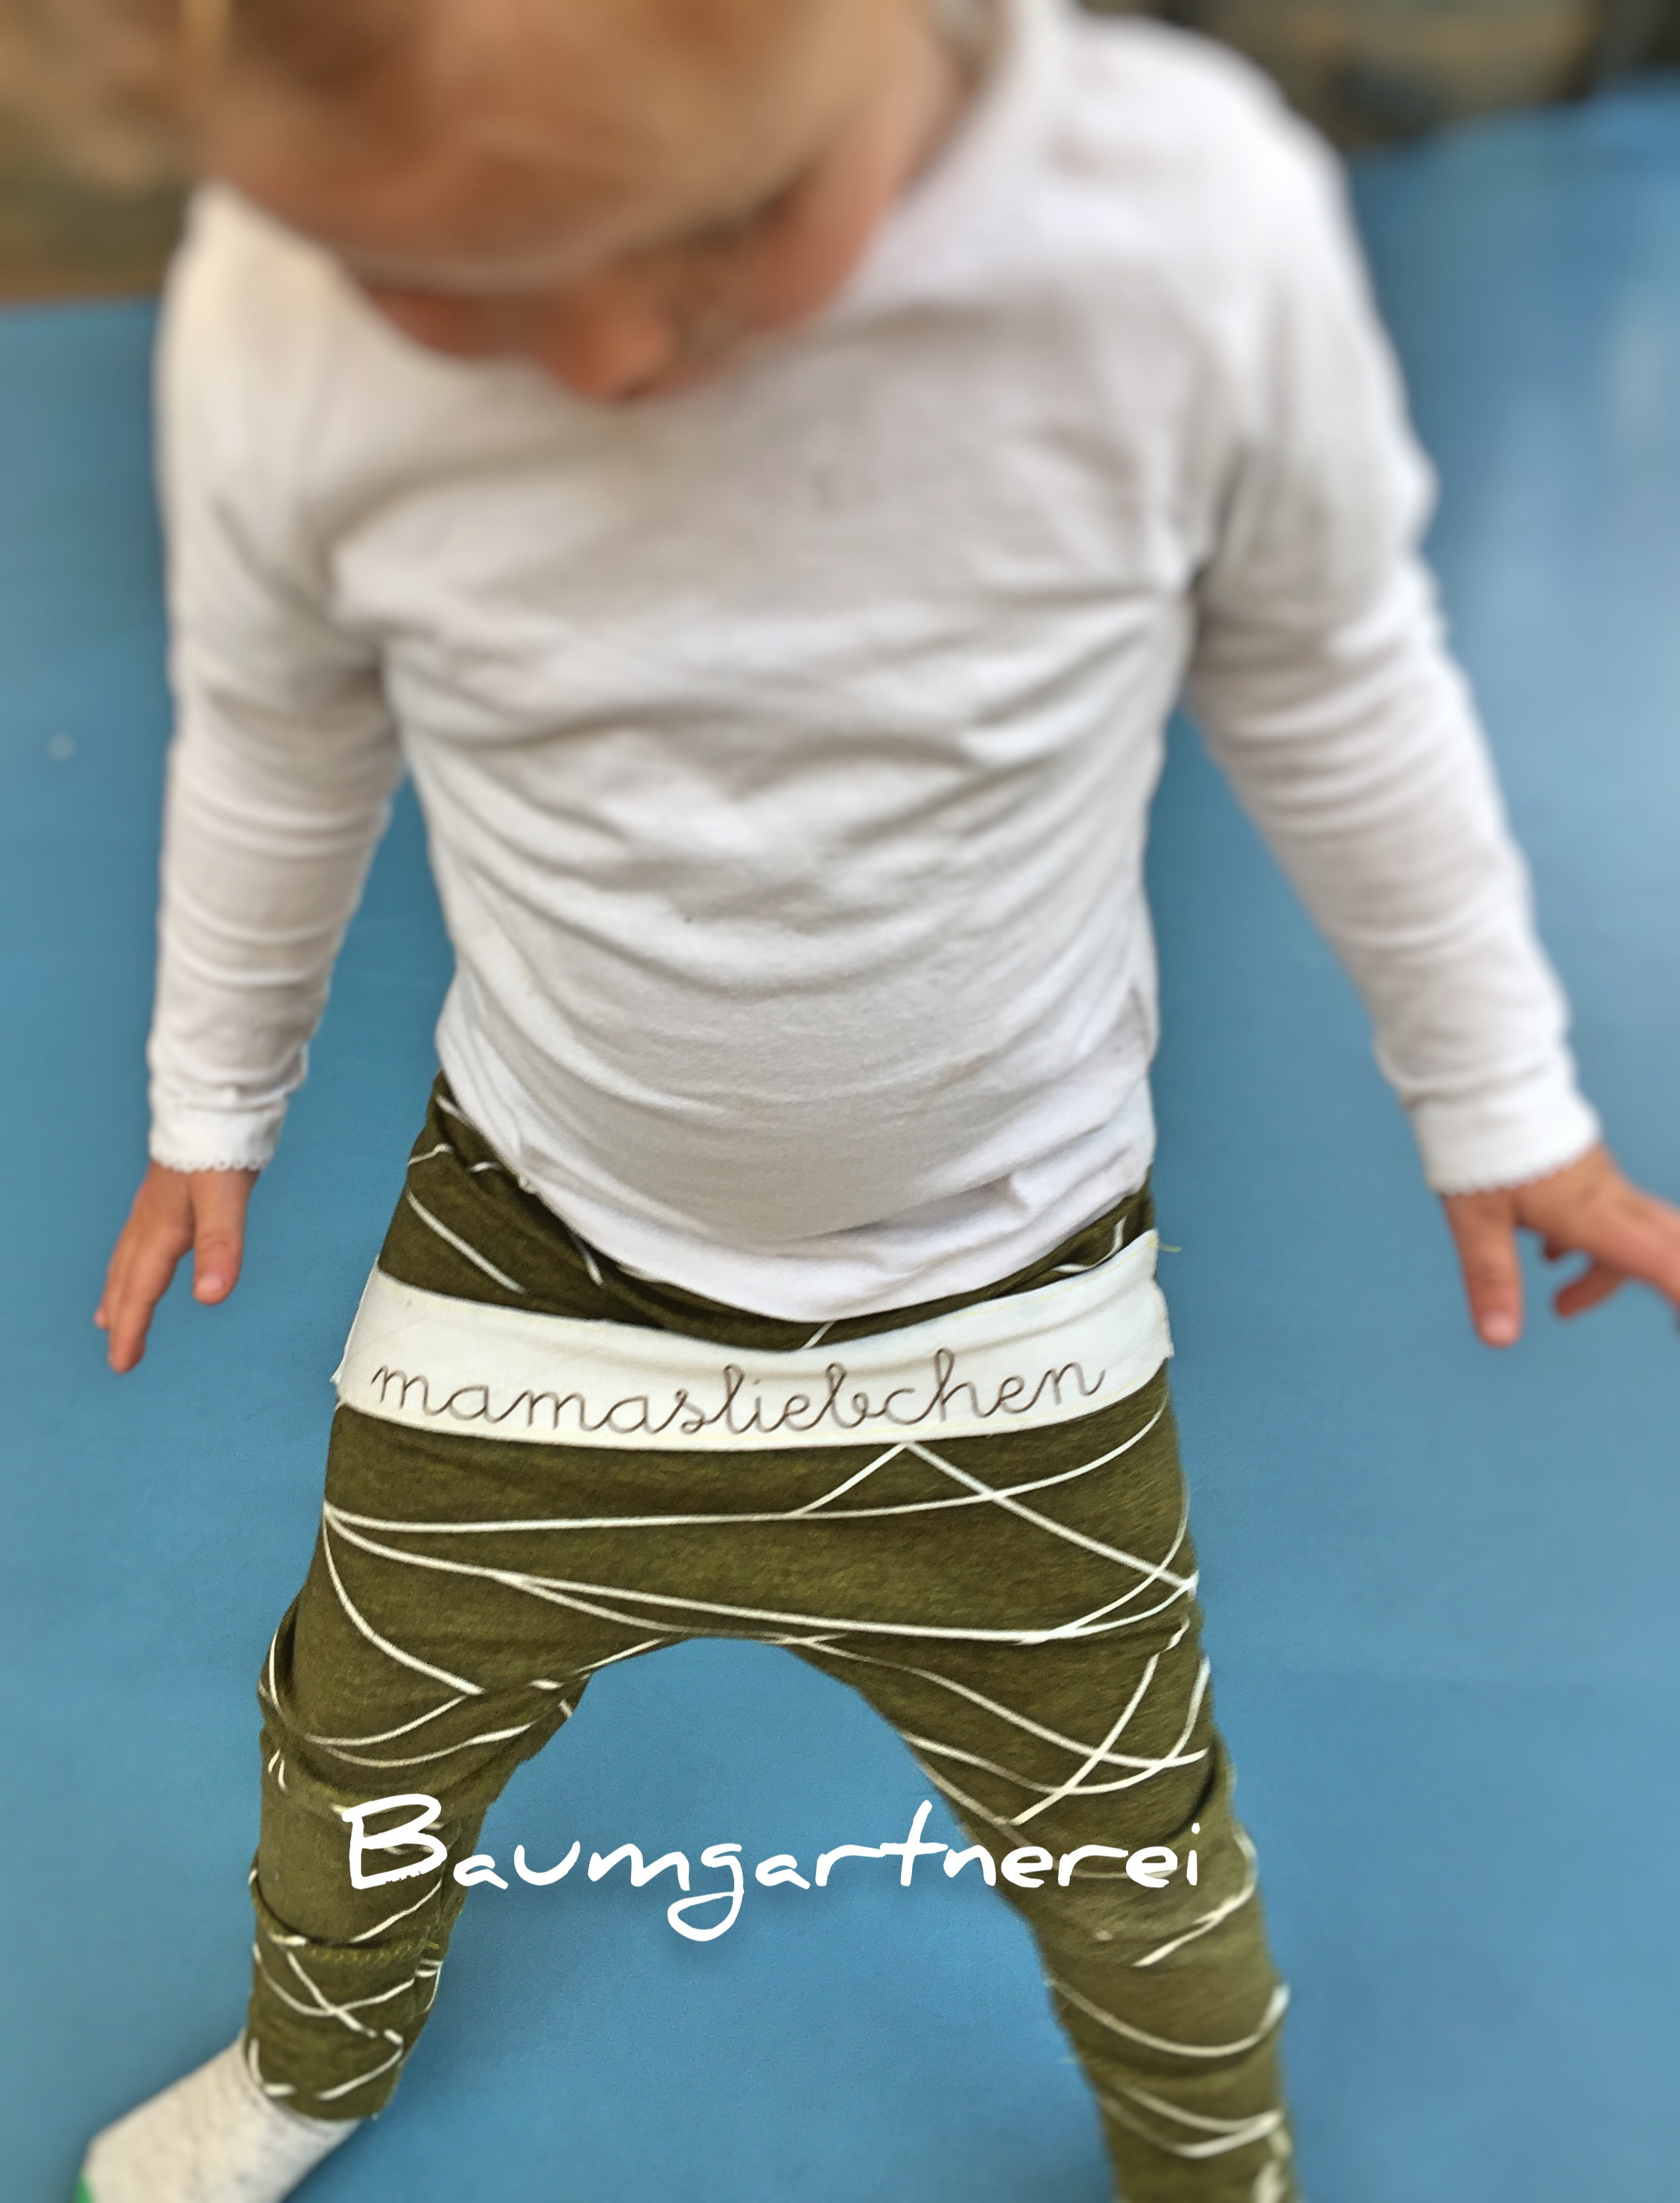 Baumgartnerei- high priorities for childrens clothes